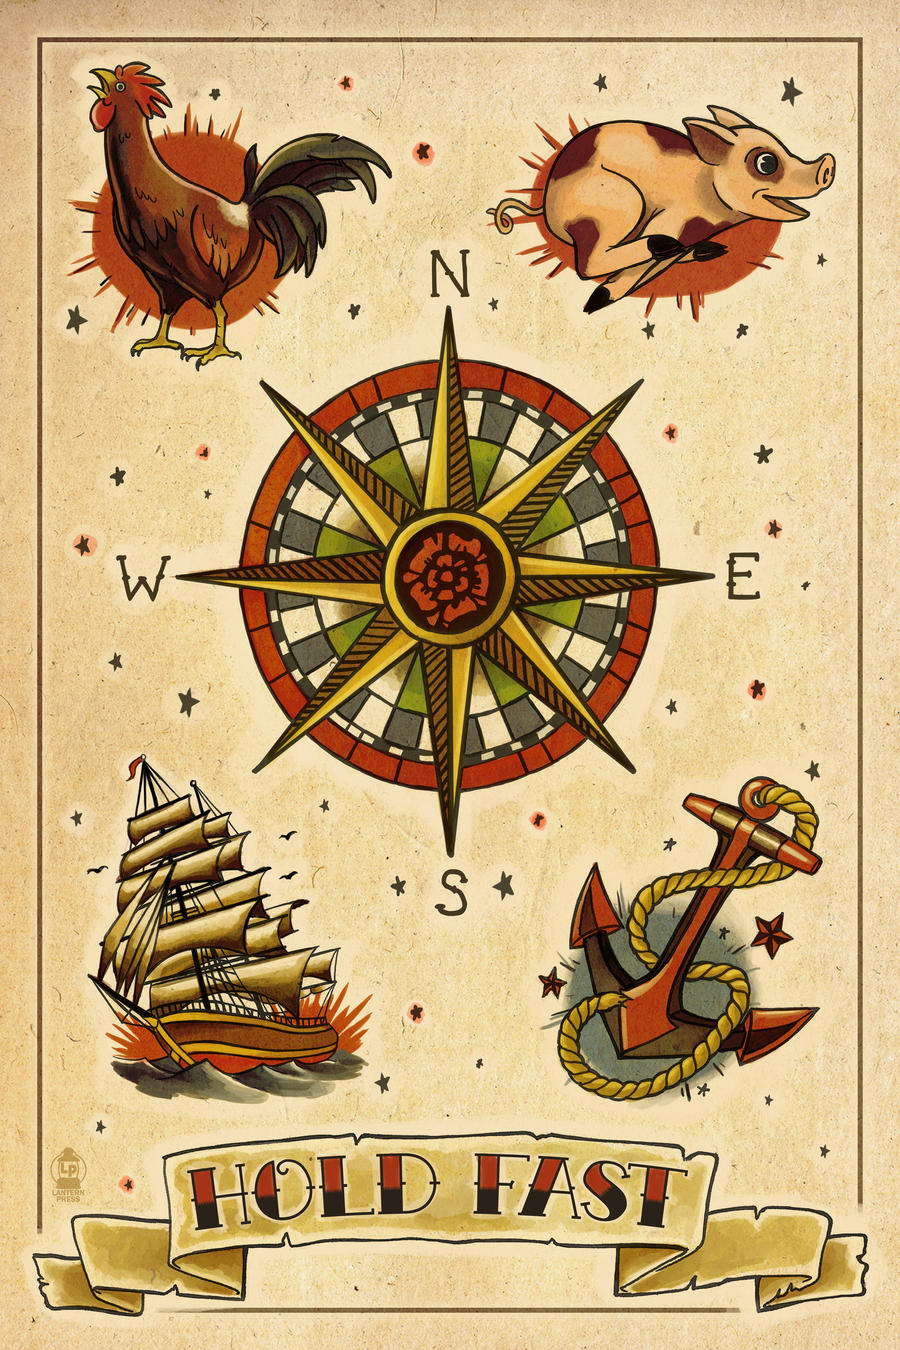 Sailor tattoo flash by alixbranwyn on deviantart for Sailer jerry tattoo